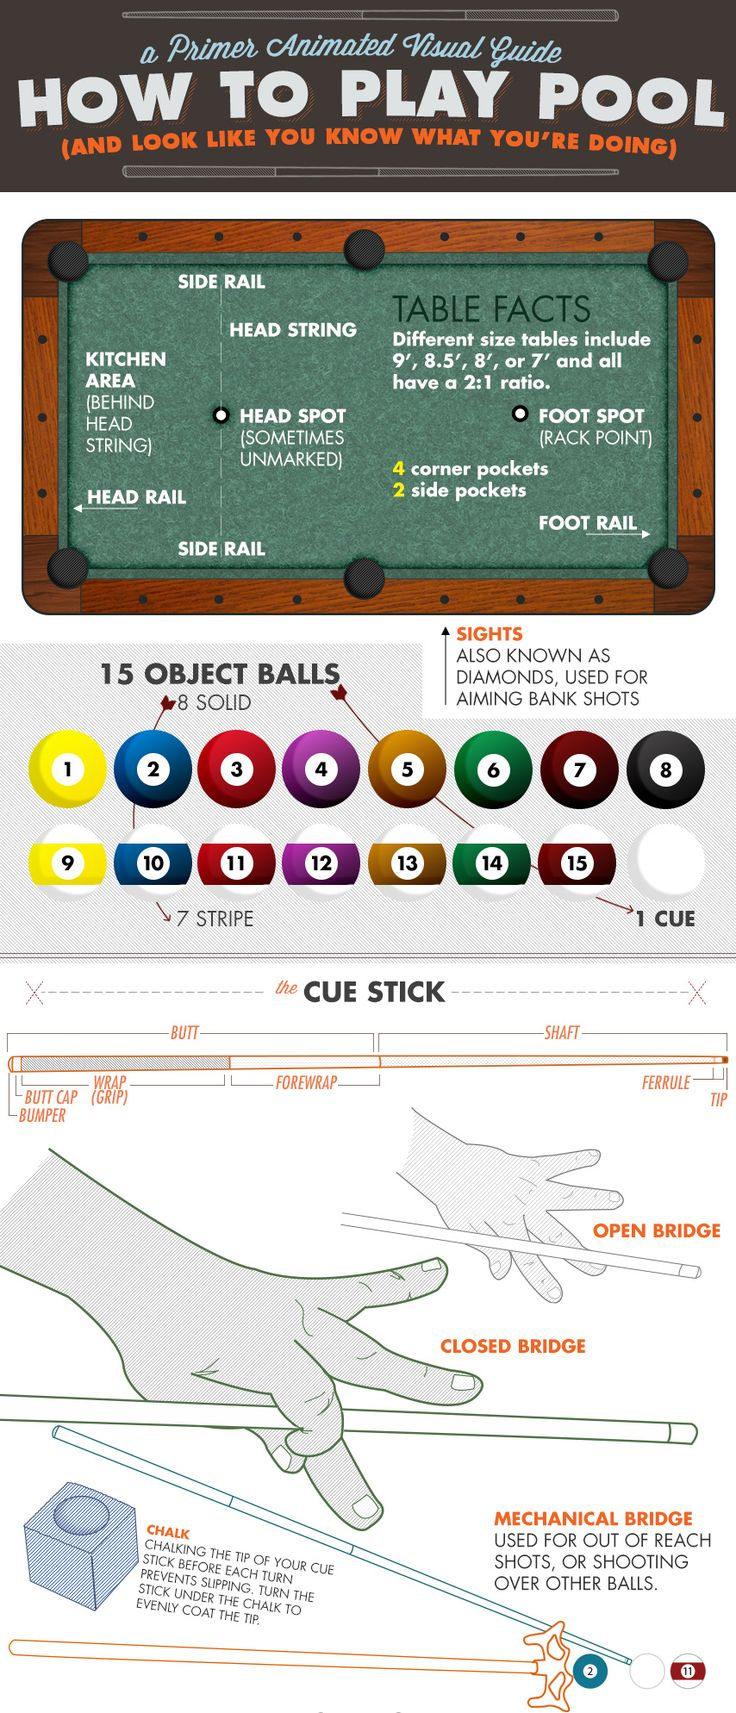 The Basics - How to Play Pool (And Look Like You Know What You're Doing): An Animated Visual Guide